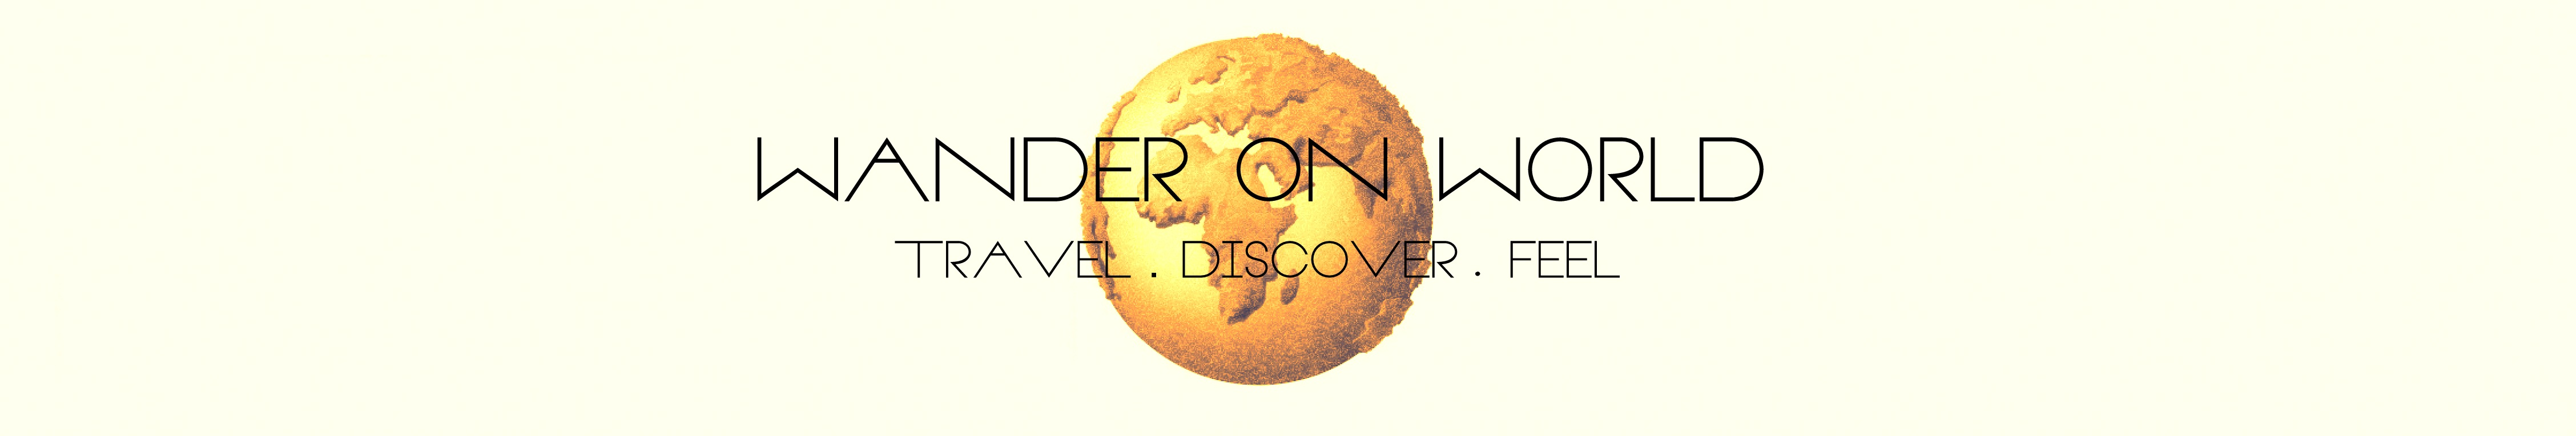 Wander on World | Travel. Discover. Feel. - Travel. Discoveer. Feel.